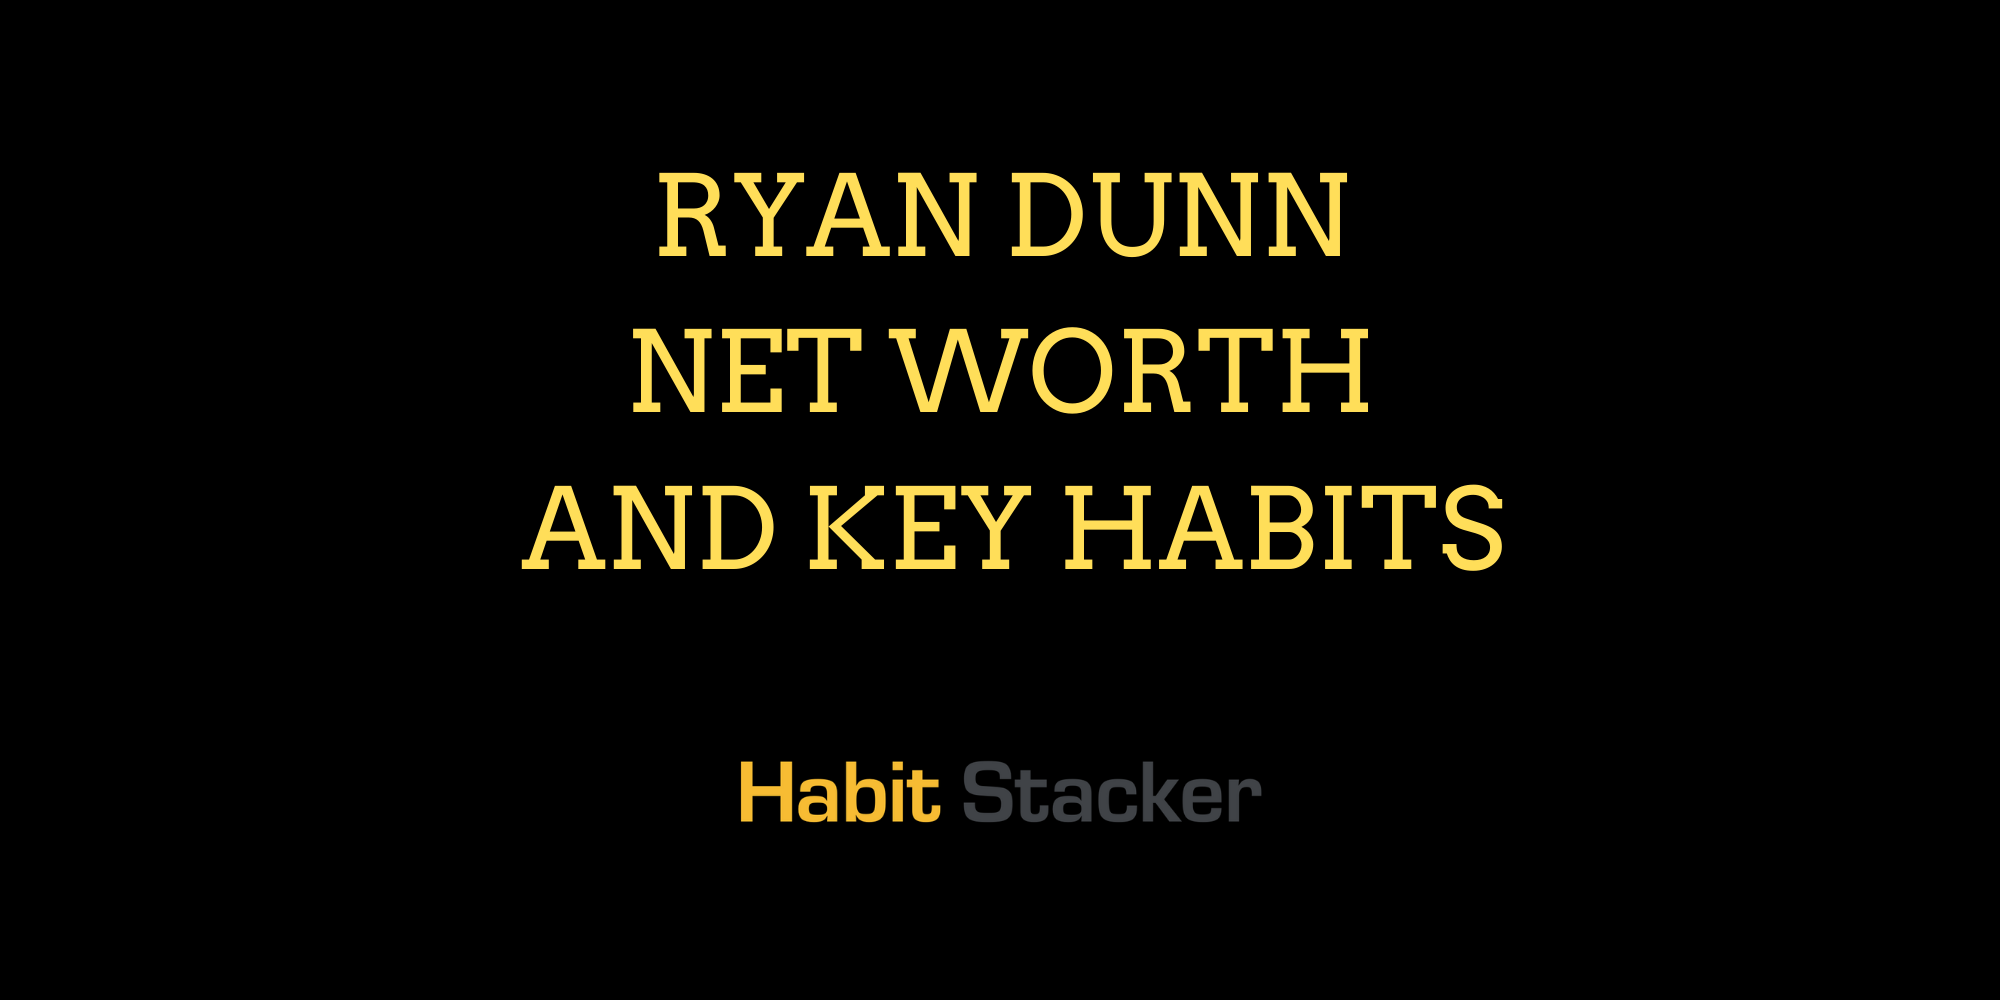 Ryan Dunn Net Worth and Key Habits